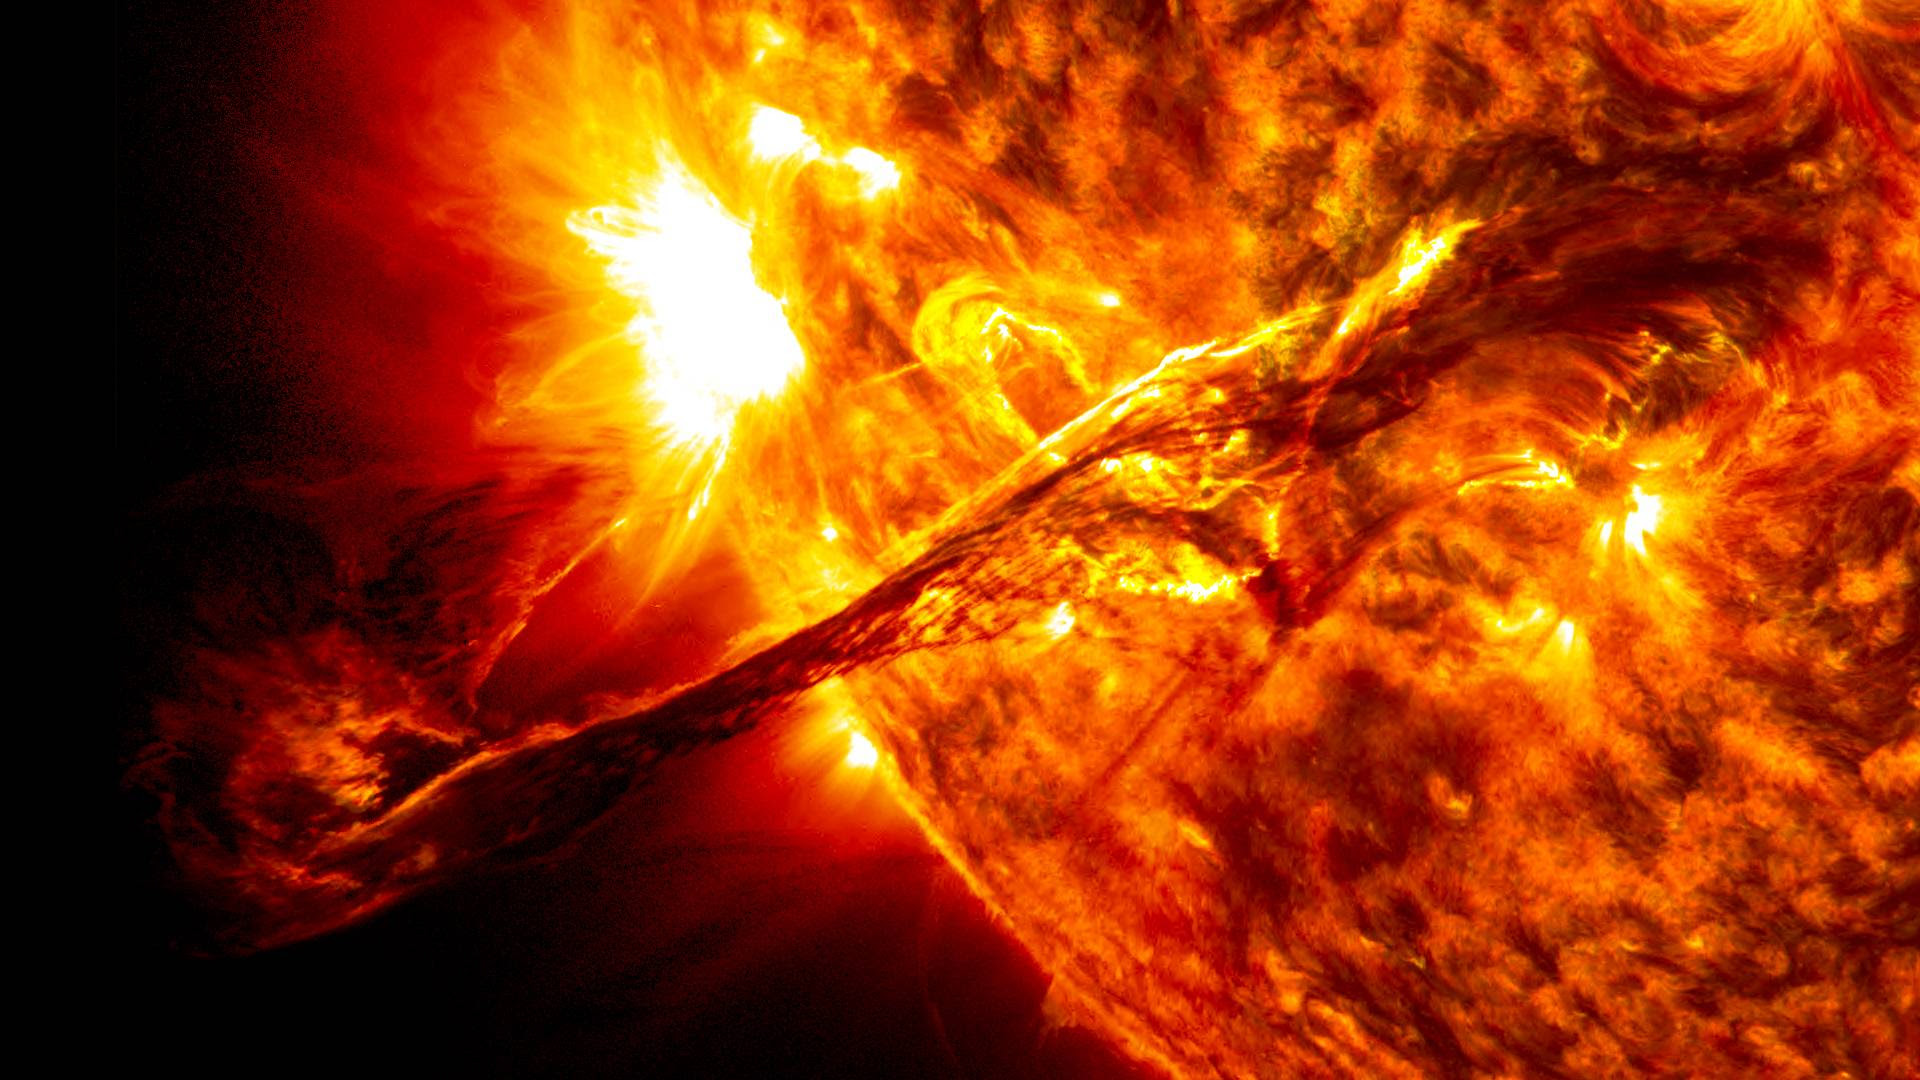 Solar Flare Wallpapers - Wallpaper Cave